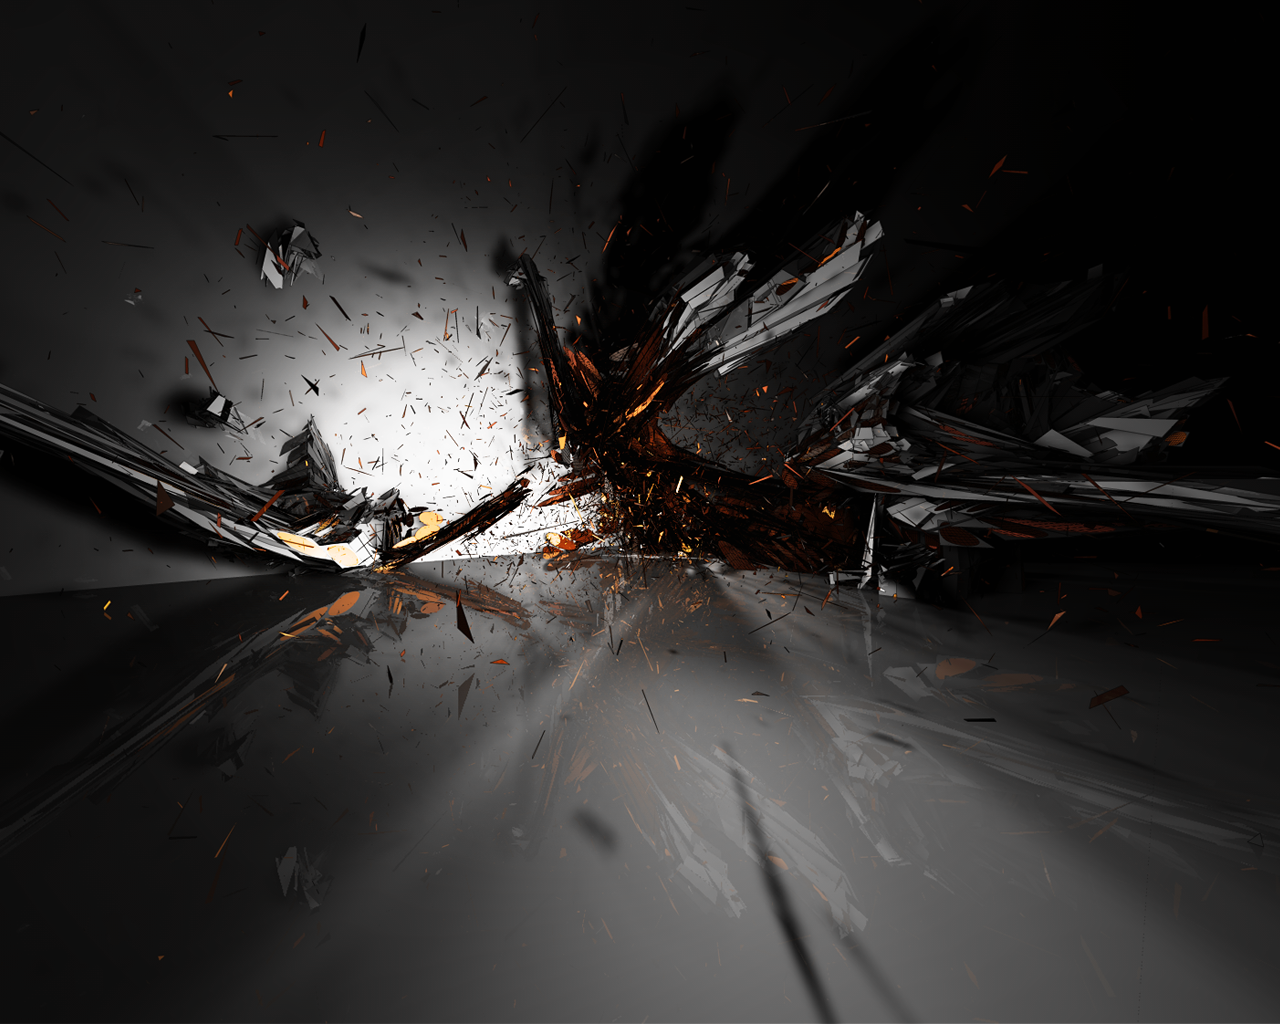 http://3.bp.blogspot.com/-dDCenJLYvPI/UEjR_v7lrfI/AAAAAAAACUA/hQlQntpTlW4/s1600/Abstract+Wallpapers+3.png